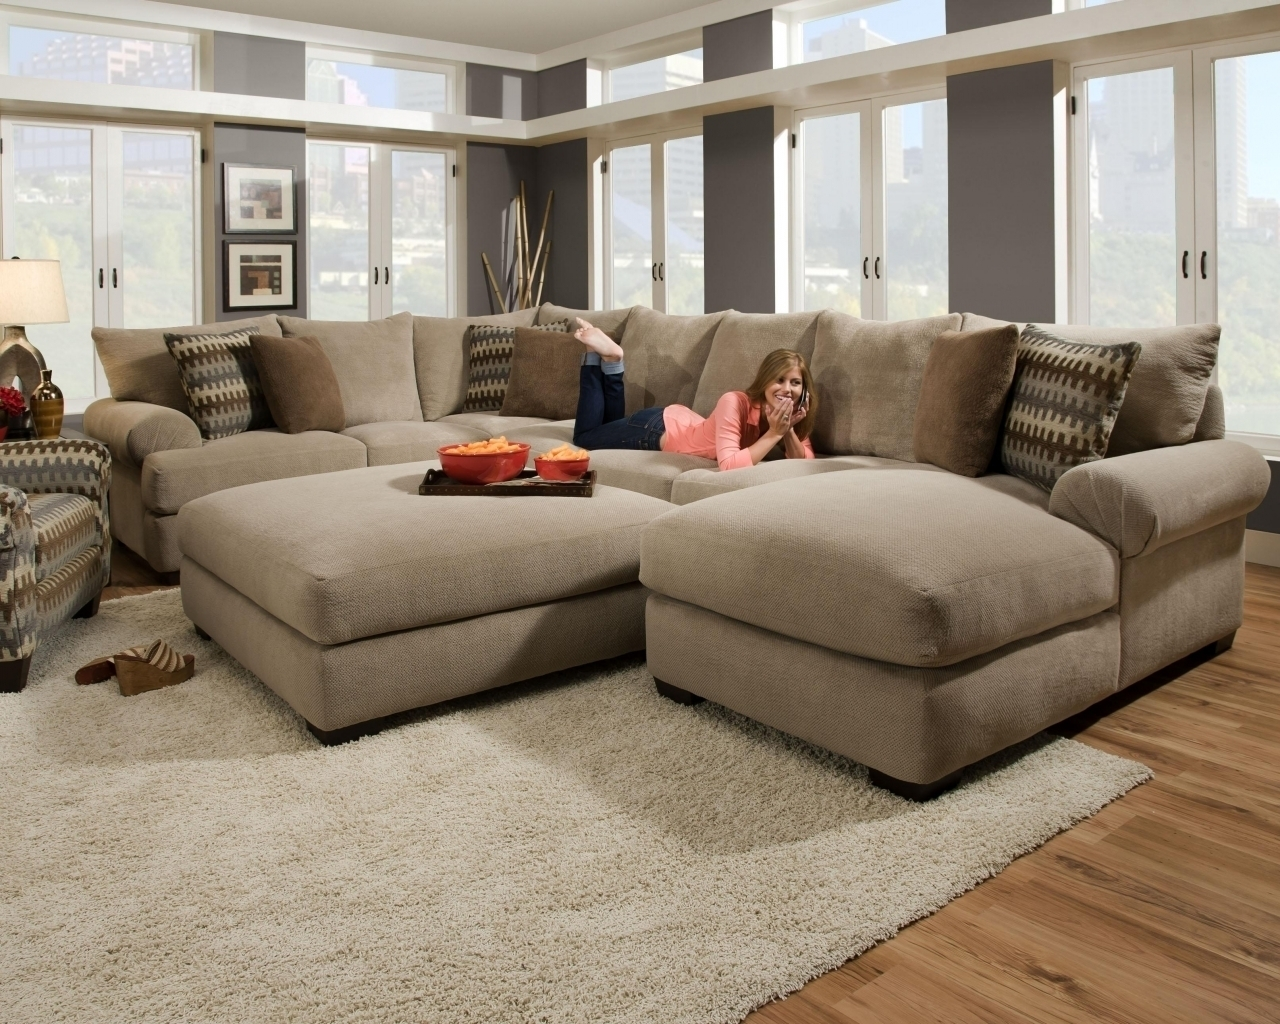 Sectional Sofa Large Ottoman • Sectional Sofa Regarding Sofas With Large Ottoman (View 5 of 10)